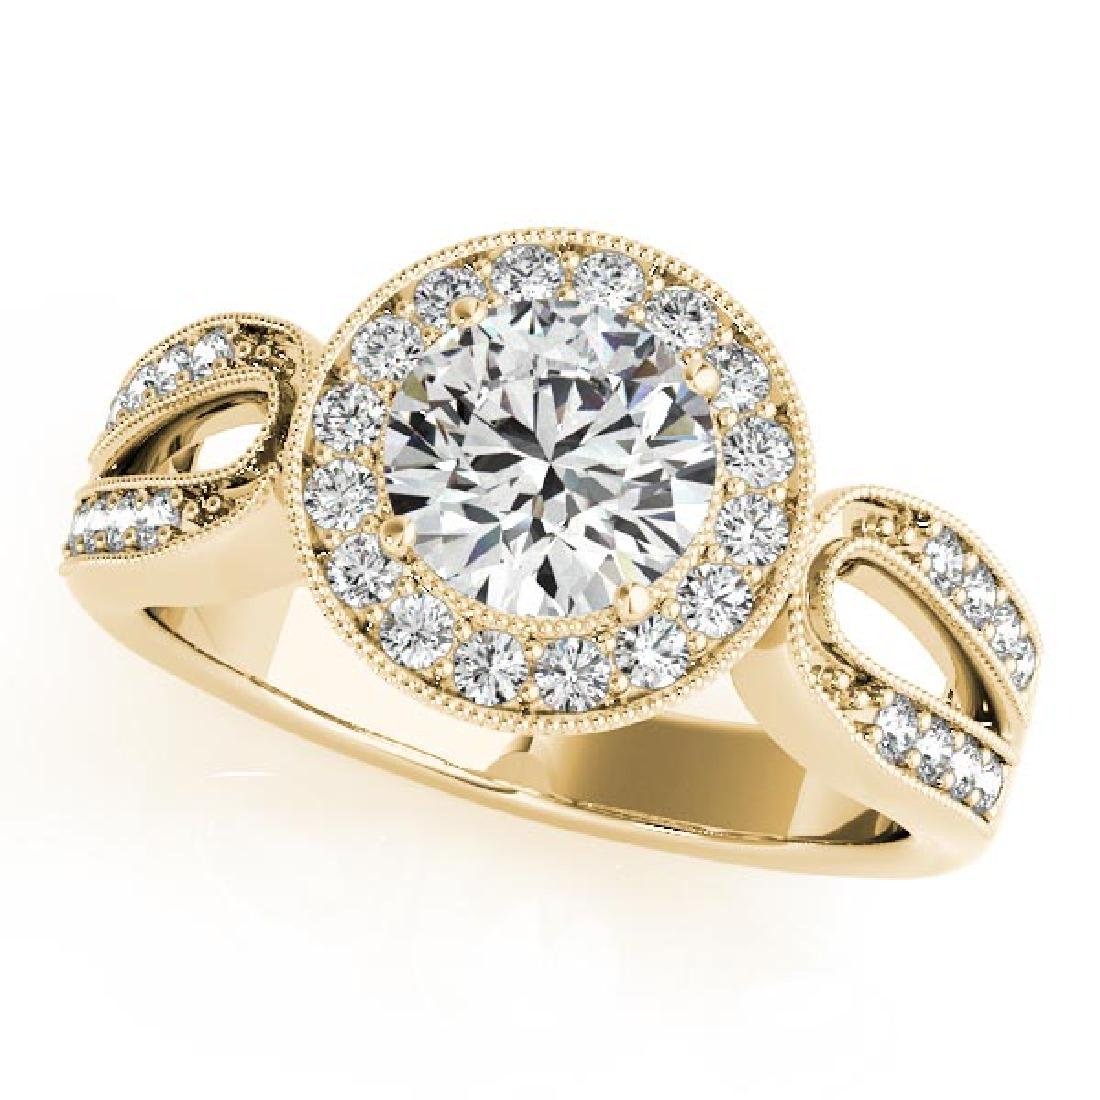 CERTIFIED 18K YELLOW GOLD .72 CT G-H/VS-SI1 DIAMOND HAL